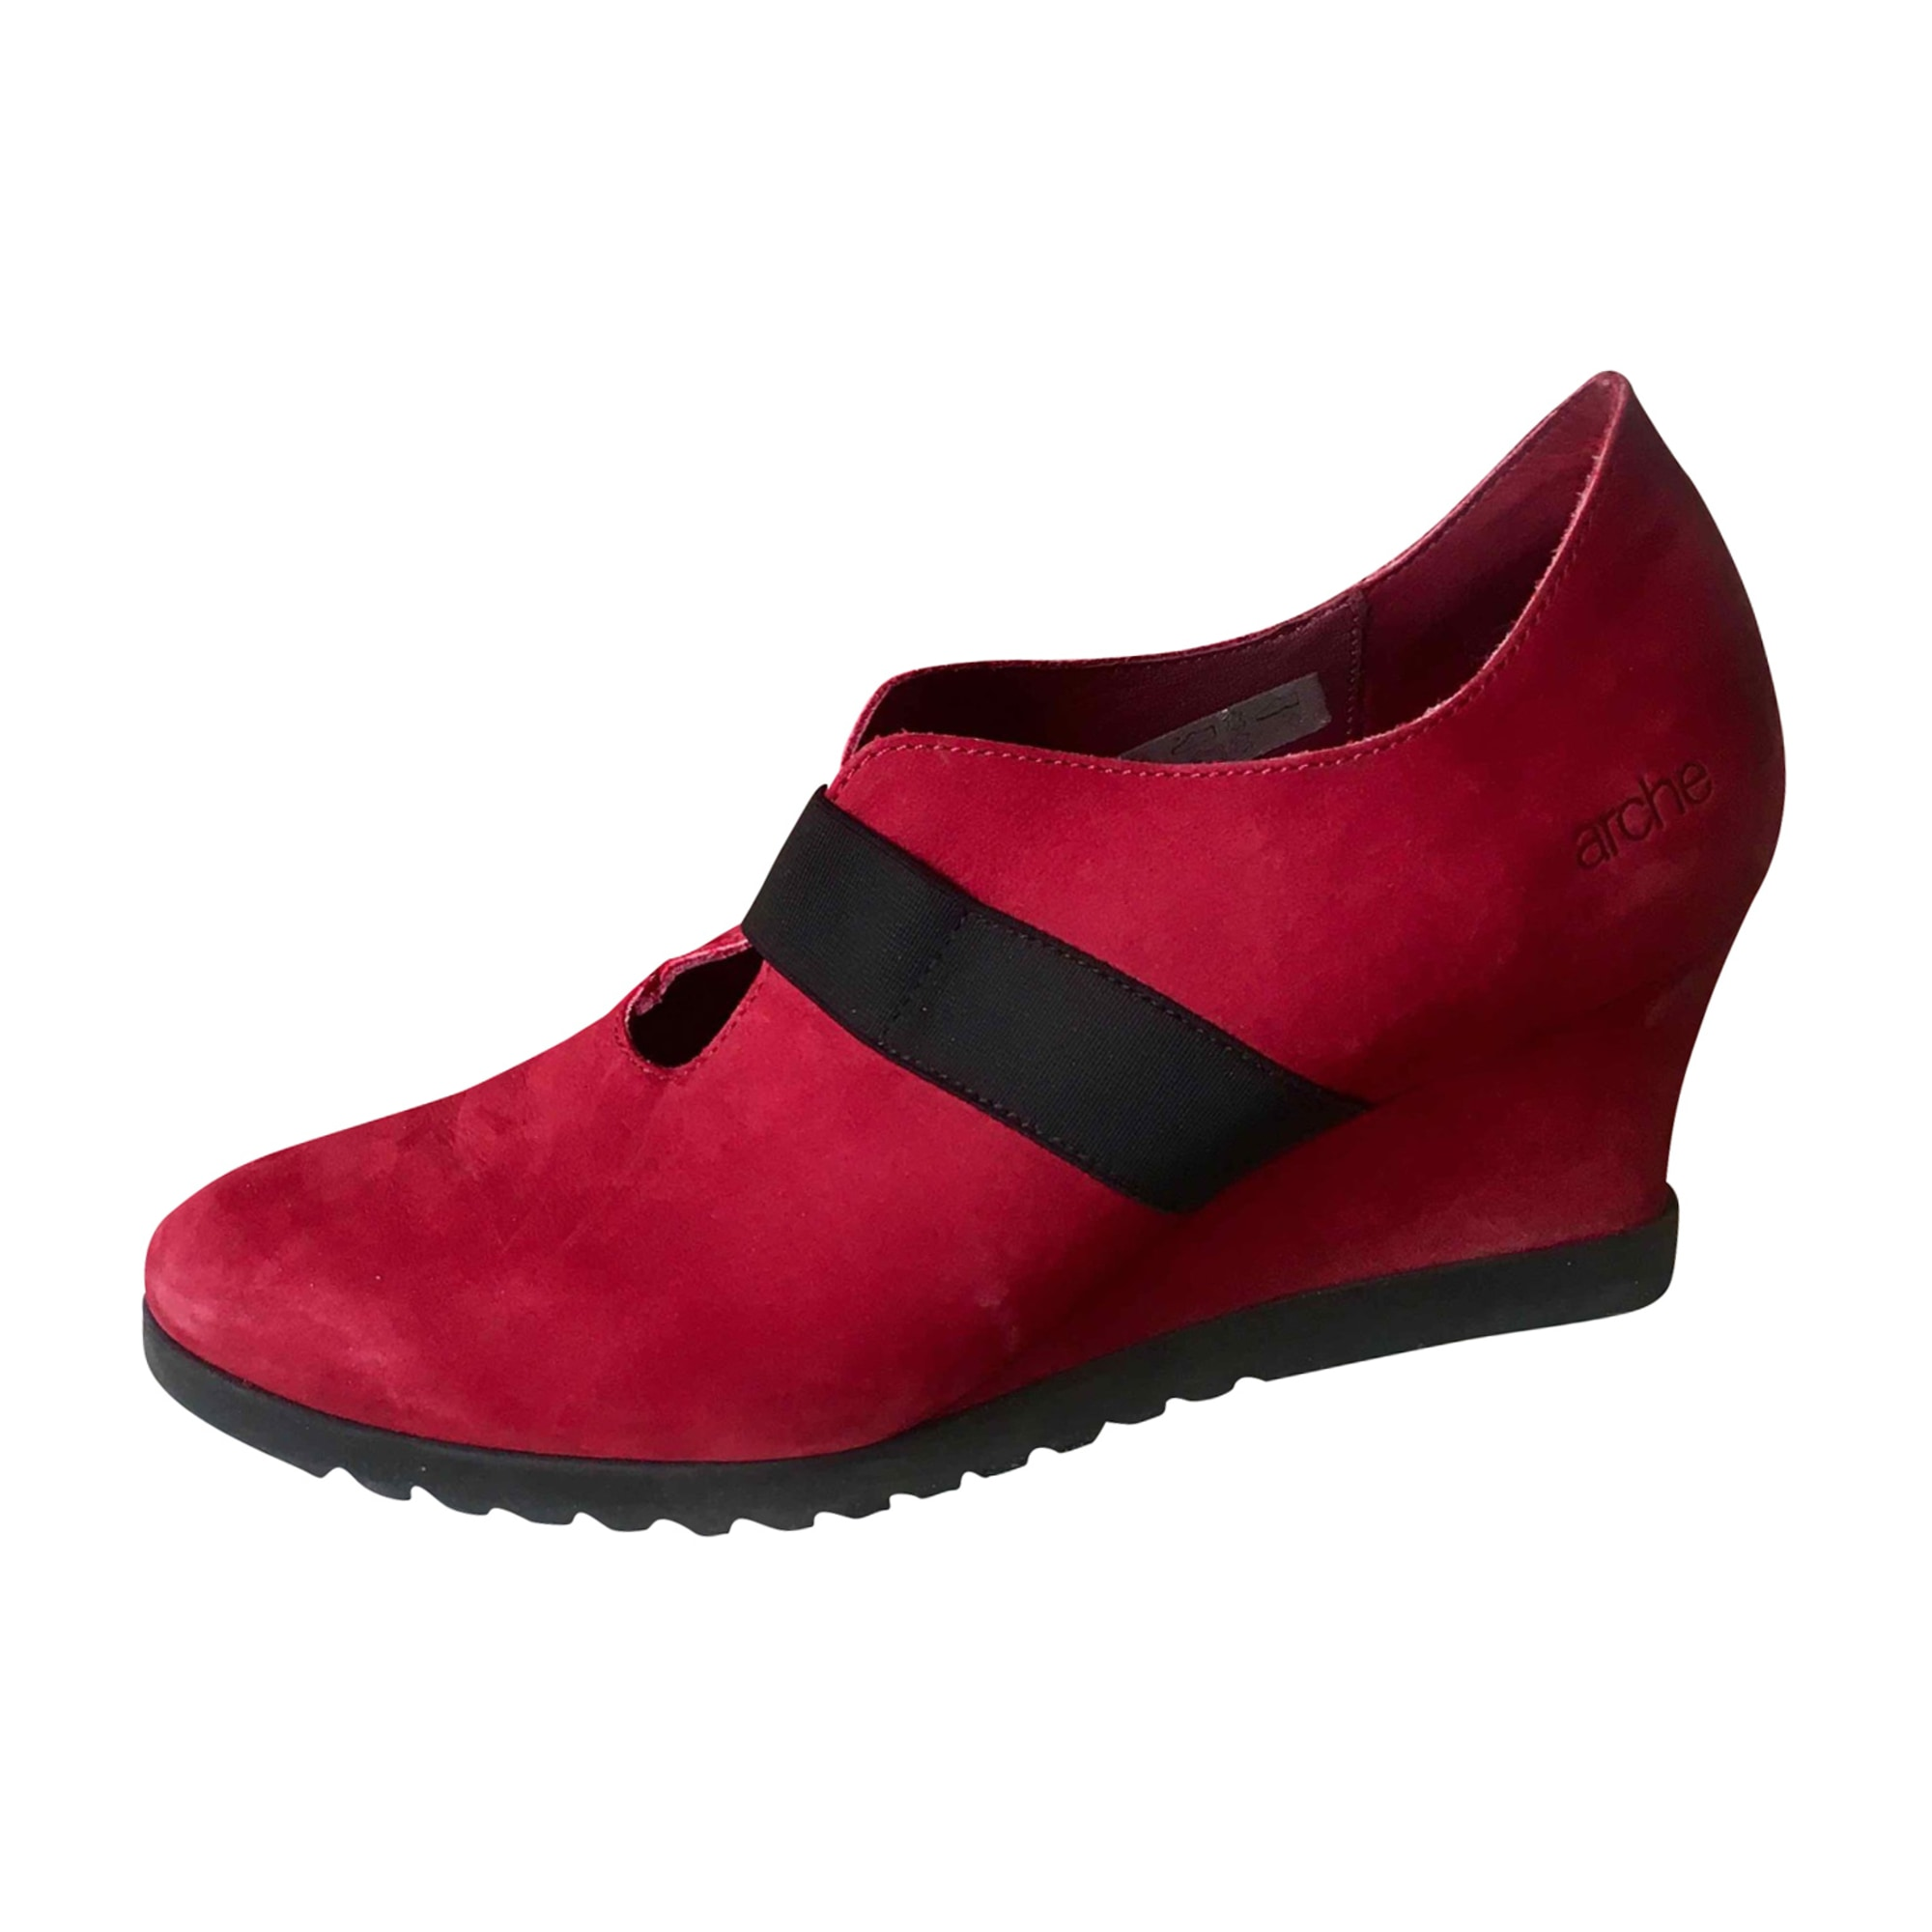 Wedge Ankle Boots ARCHE Red, burgundy